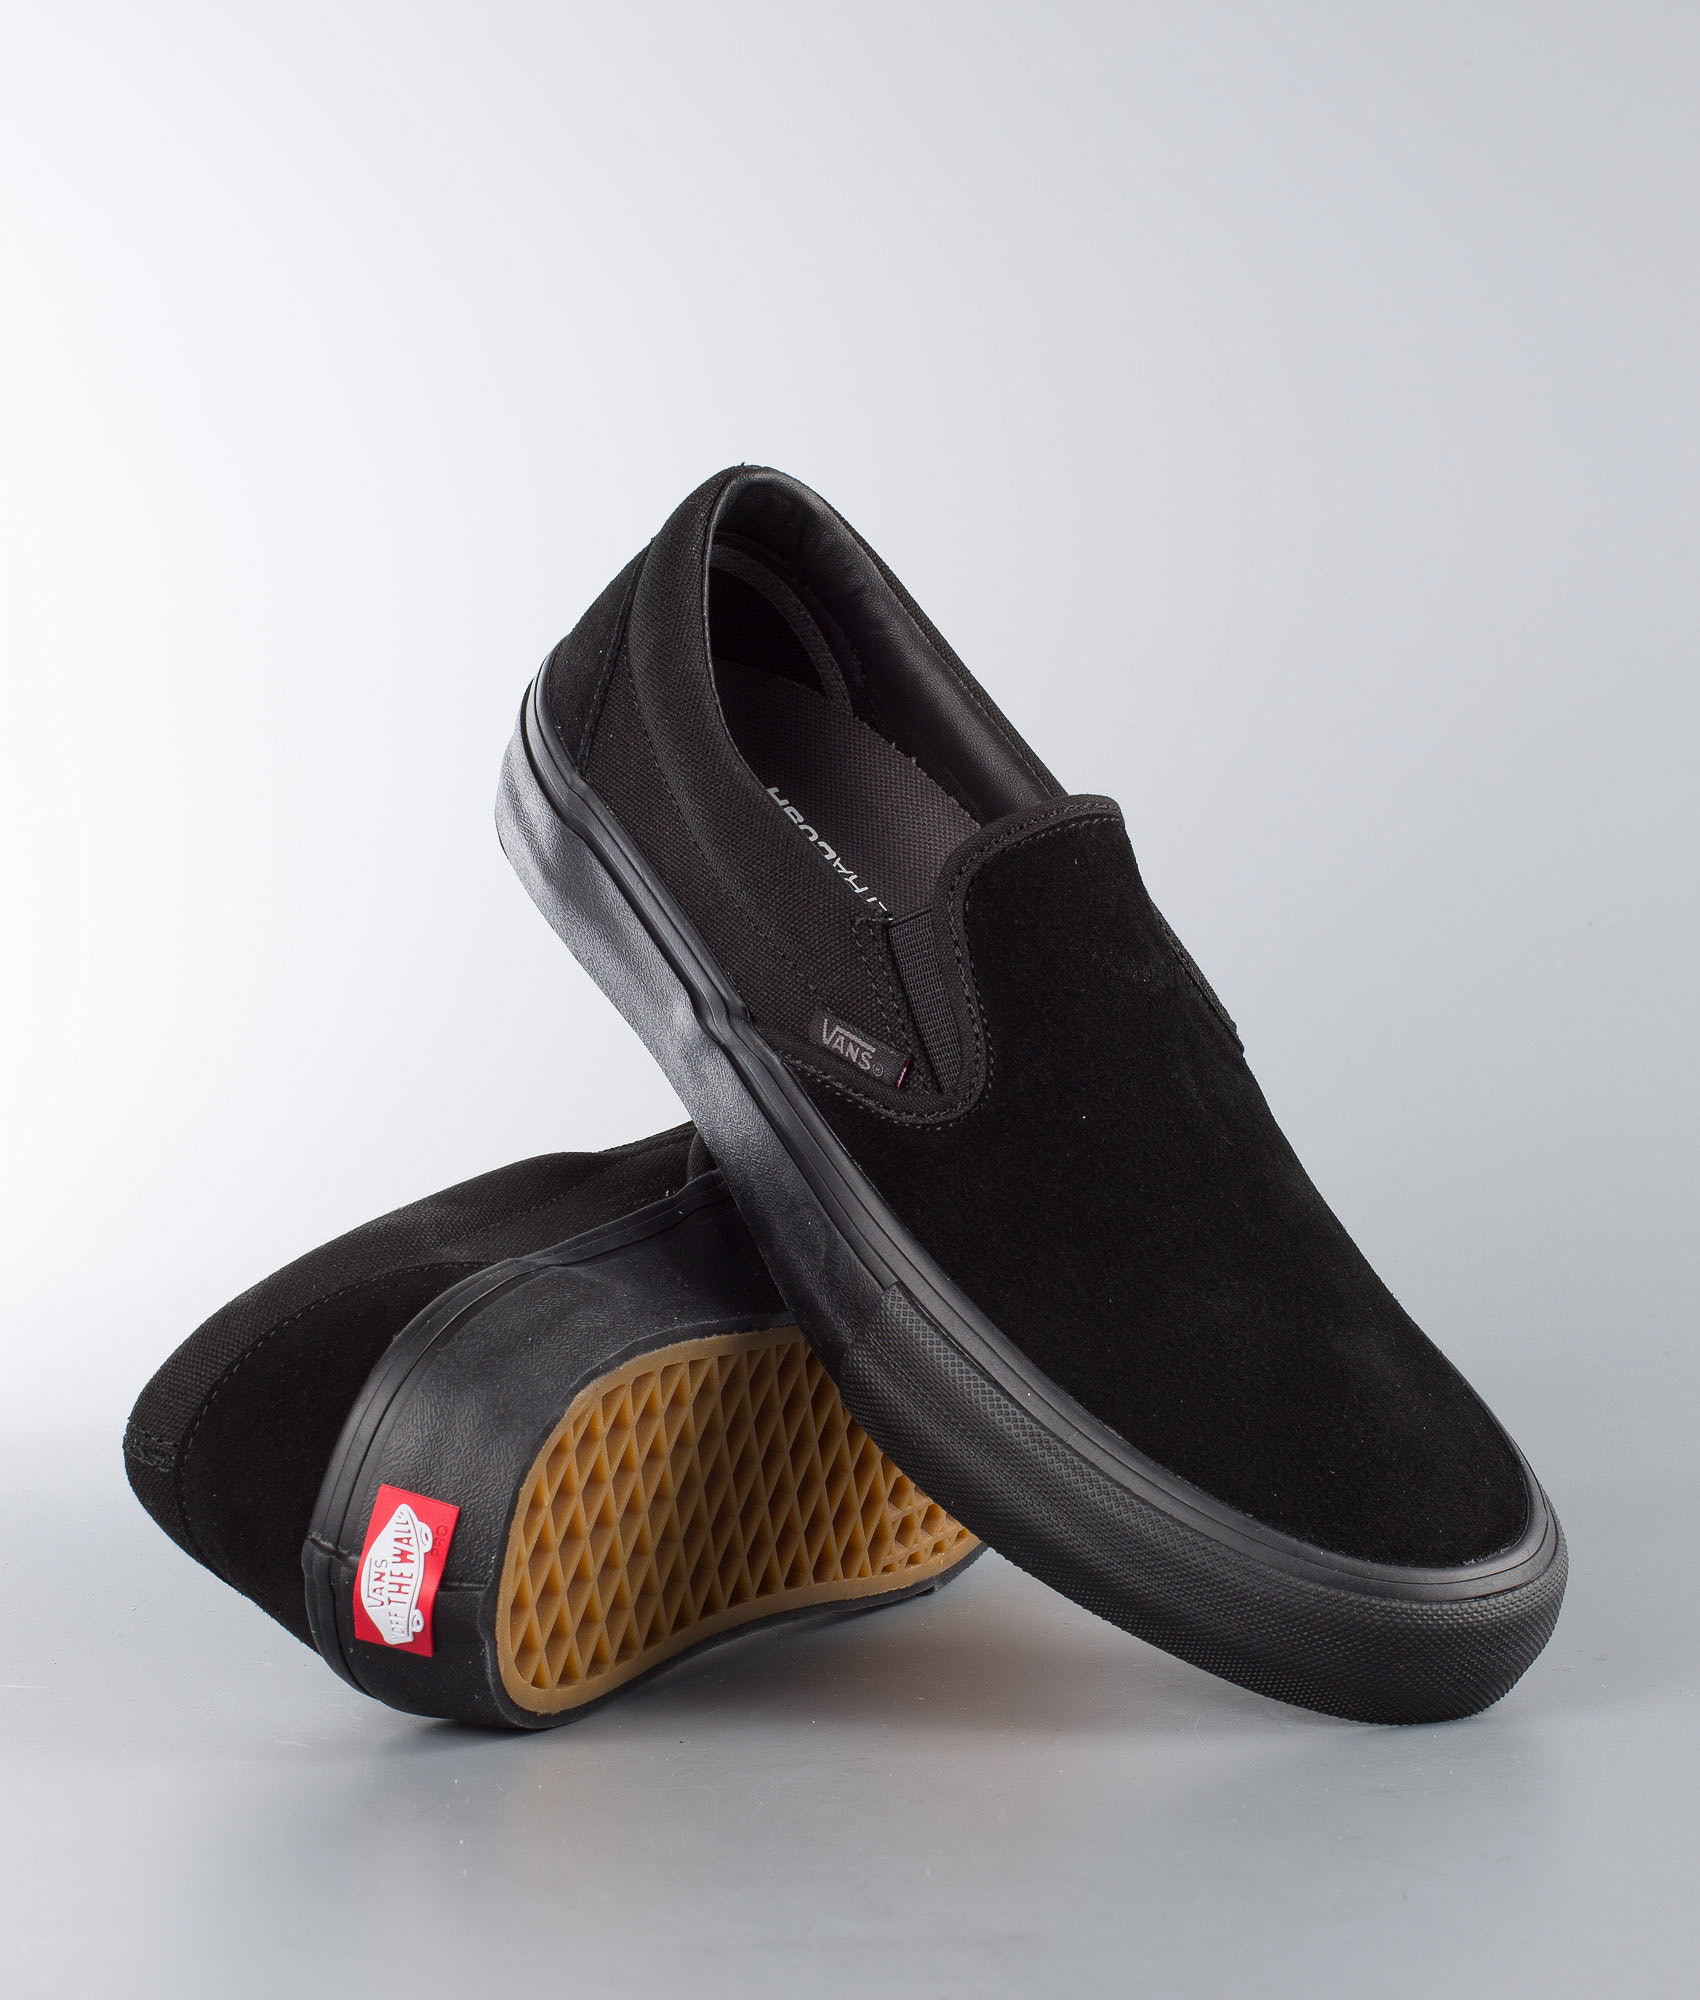 1e26b4e8f64e7f Vans Slip-On Pro Shoes Blackout - Ridestore.com